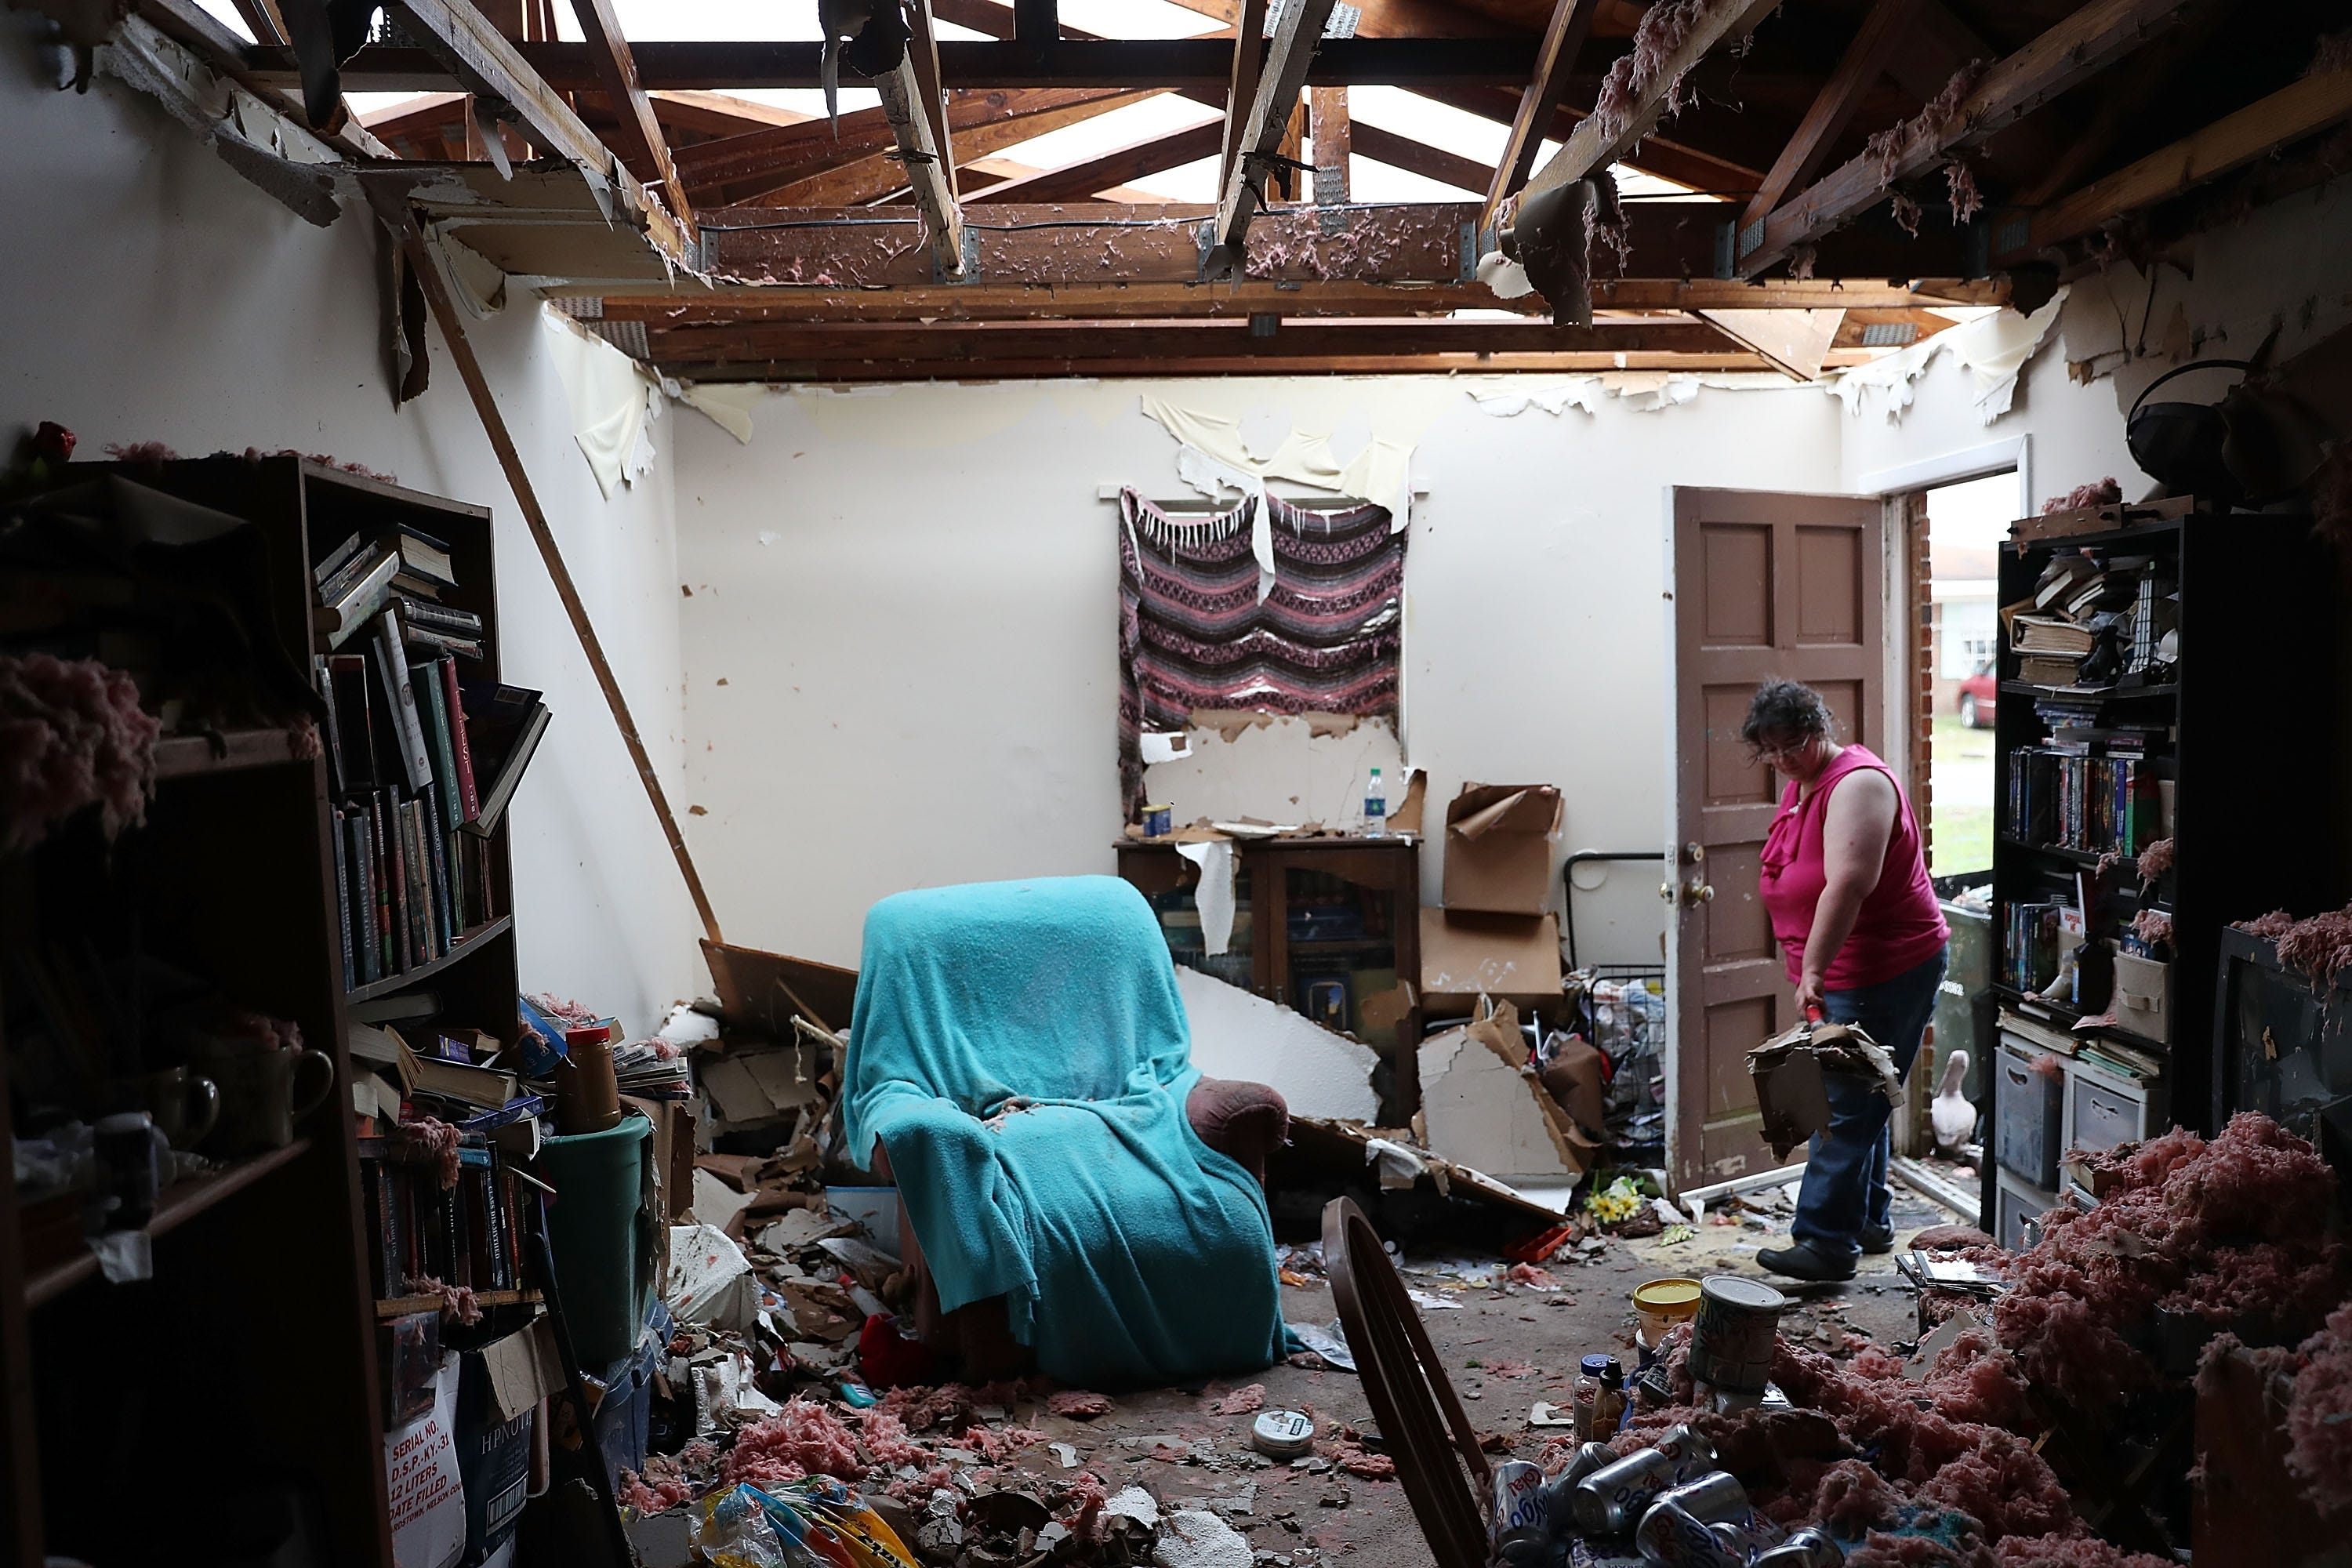 PANAMA CITY, FL - OCTOBER 11:  Amanda Logsdon begins the process of trying to clean up her home after the roof was blown off by the passing winds of hurricane Michael on October 11, 2018 in Panama City, Florida. The hurricane hit the Florida Panhandle as a category 4 storm.  (Photo by Joe Raedle/Getty Images) ORG XMIT: 775241167 ORIG FILE ID: 1051882830